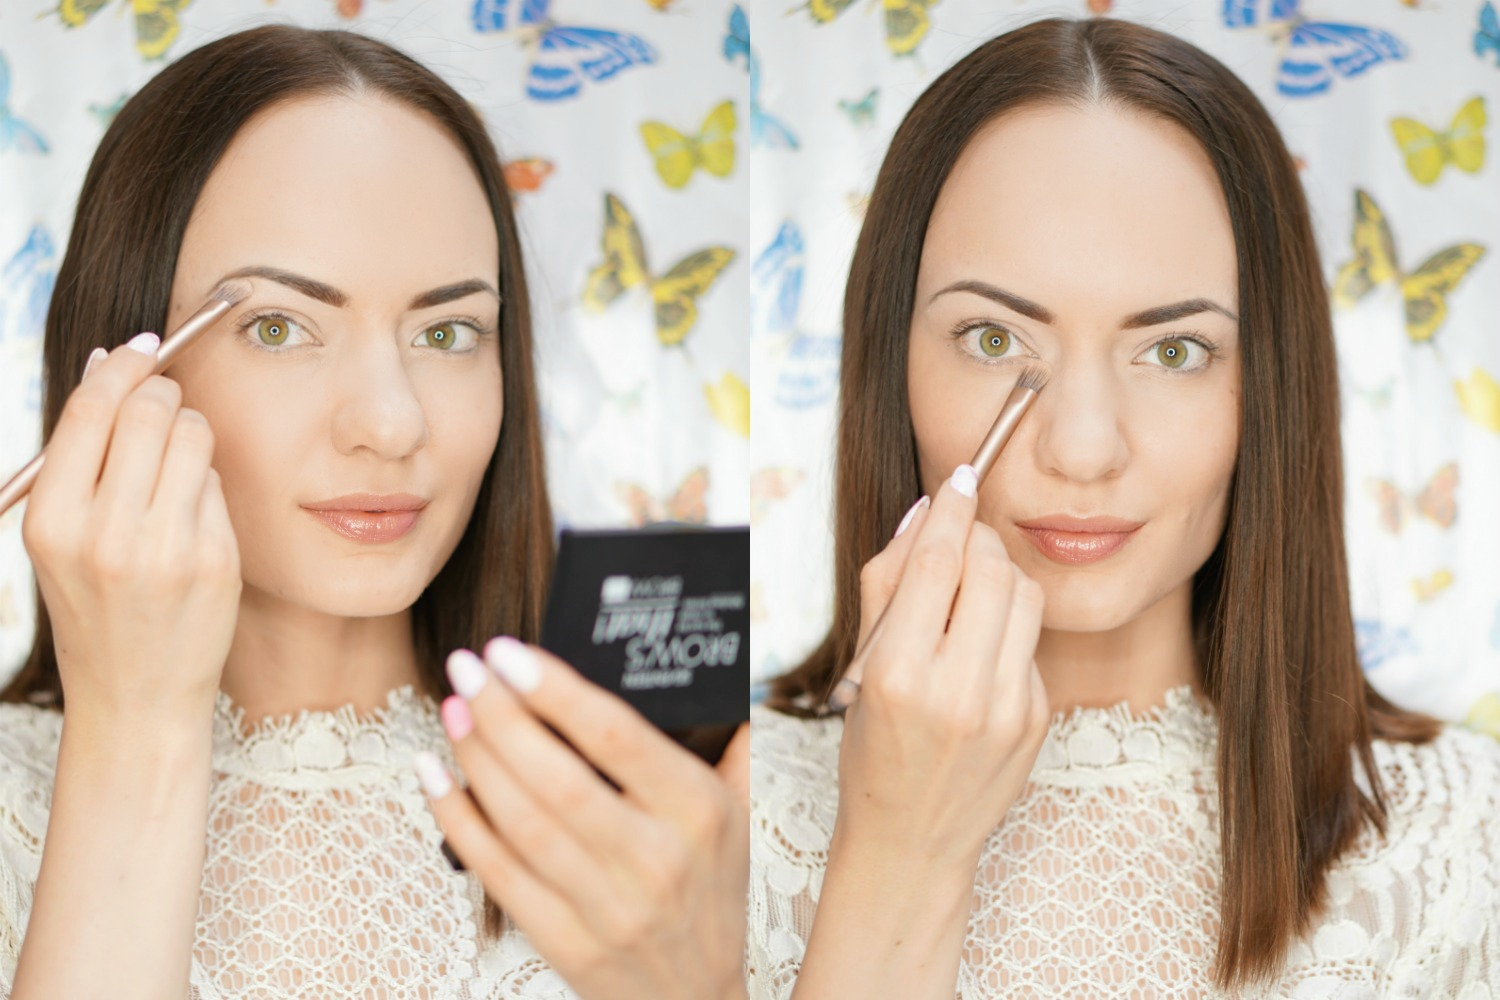 StyleSprinter - Brows 101 - Highlighter